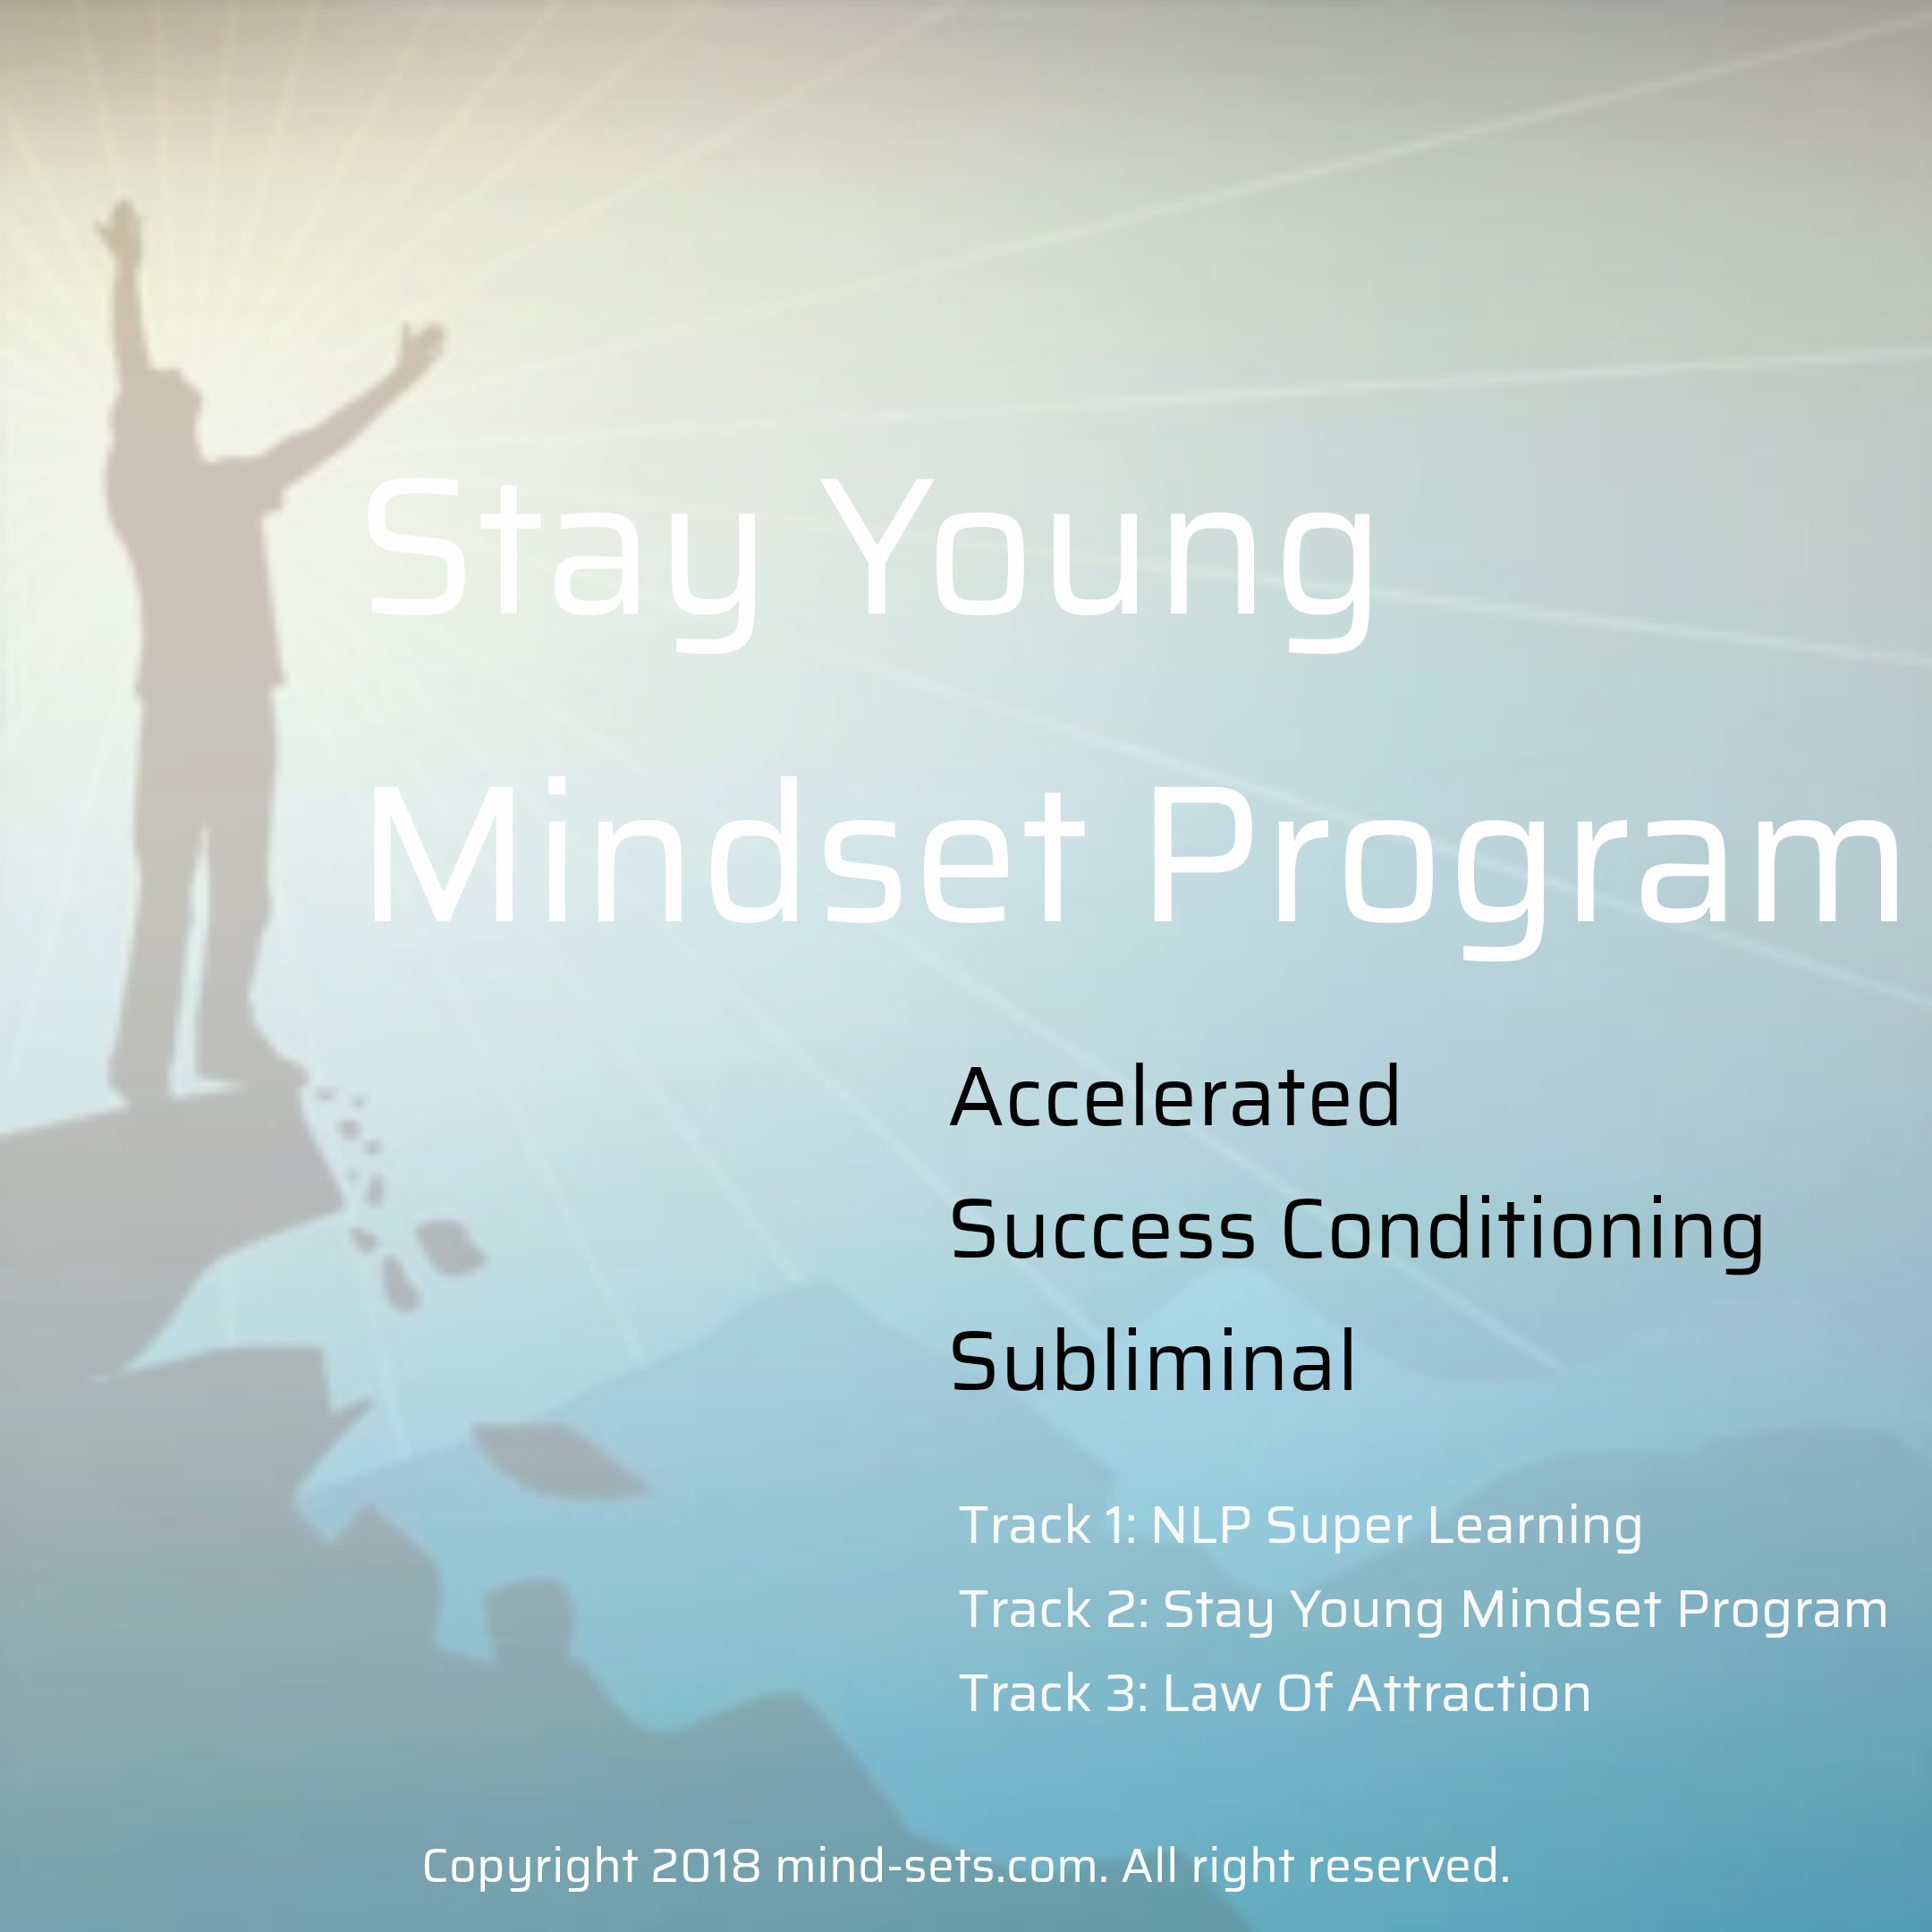 Stay Young Mindset Program